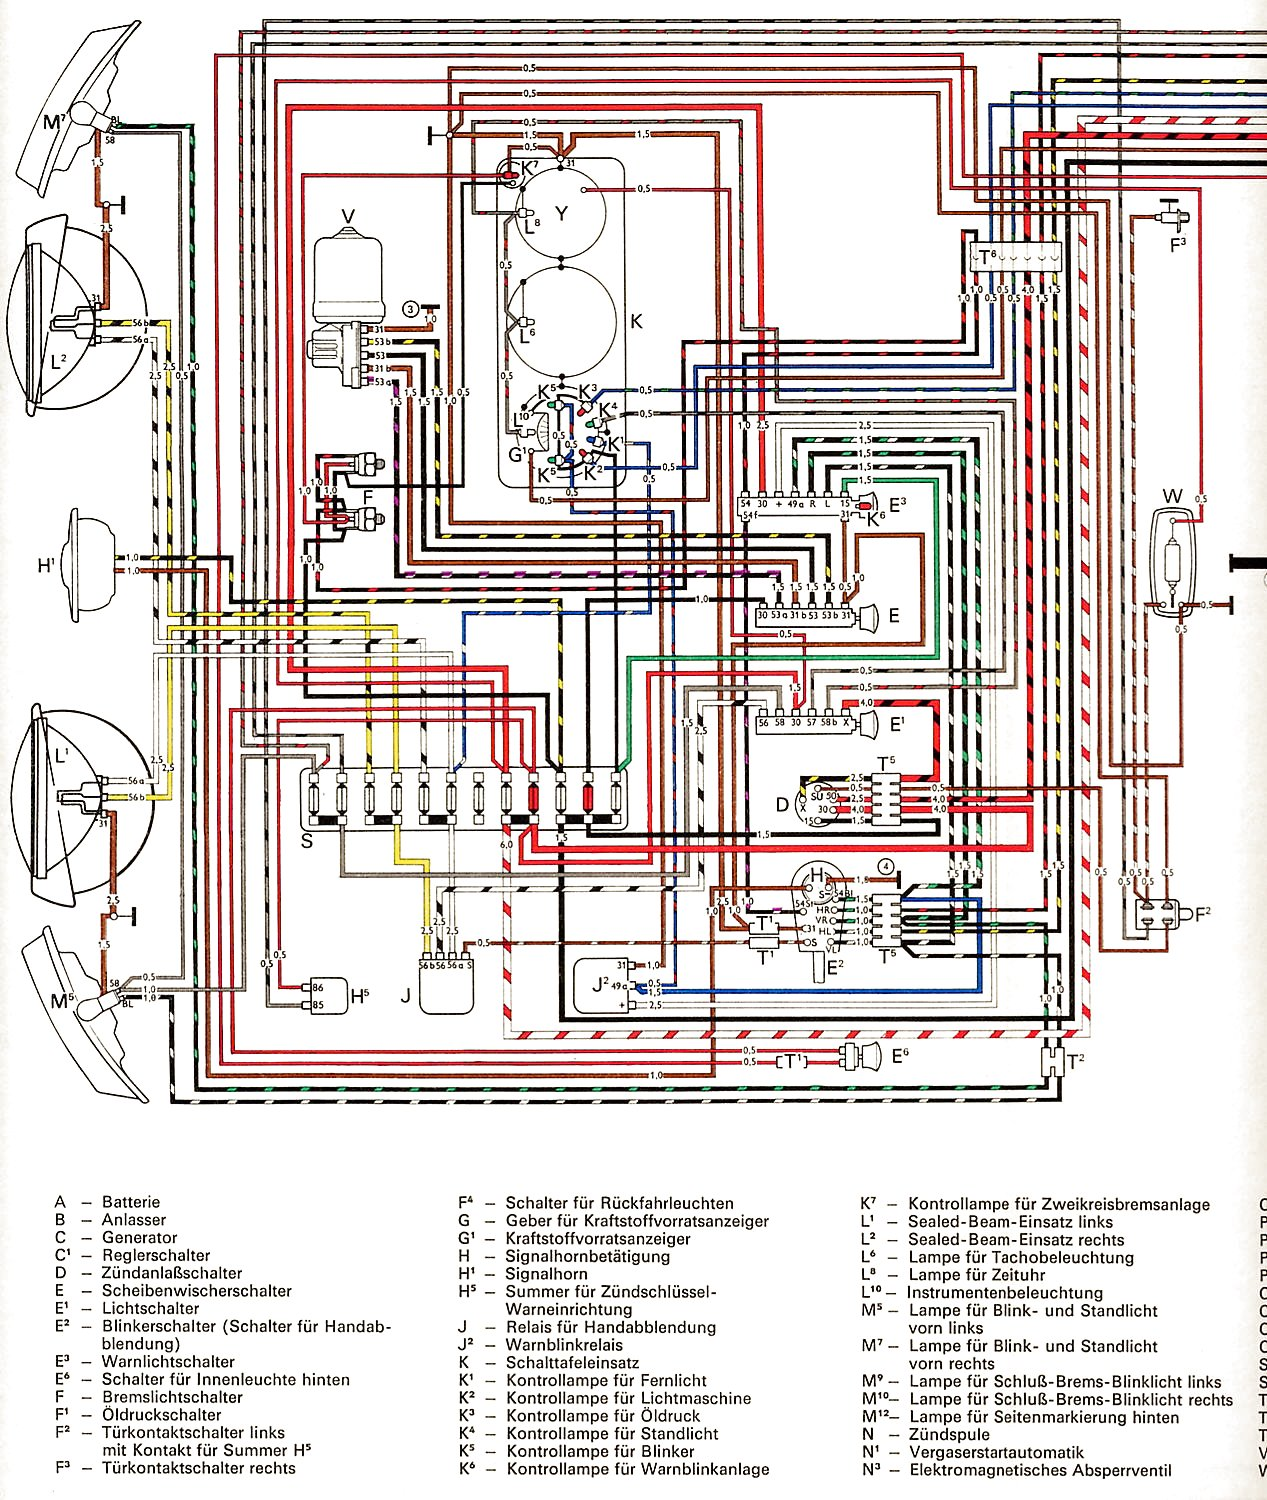 1973 Vw Van Wiring Diagram Opinions About Wiring Diagram \u2022 VW Bus  Trans Diagram 79 Vw Bus Wiring Diagram